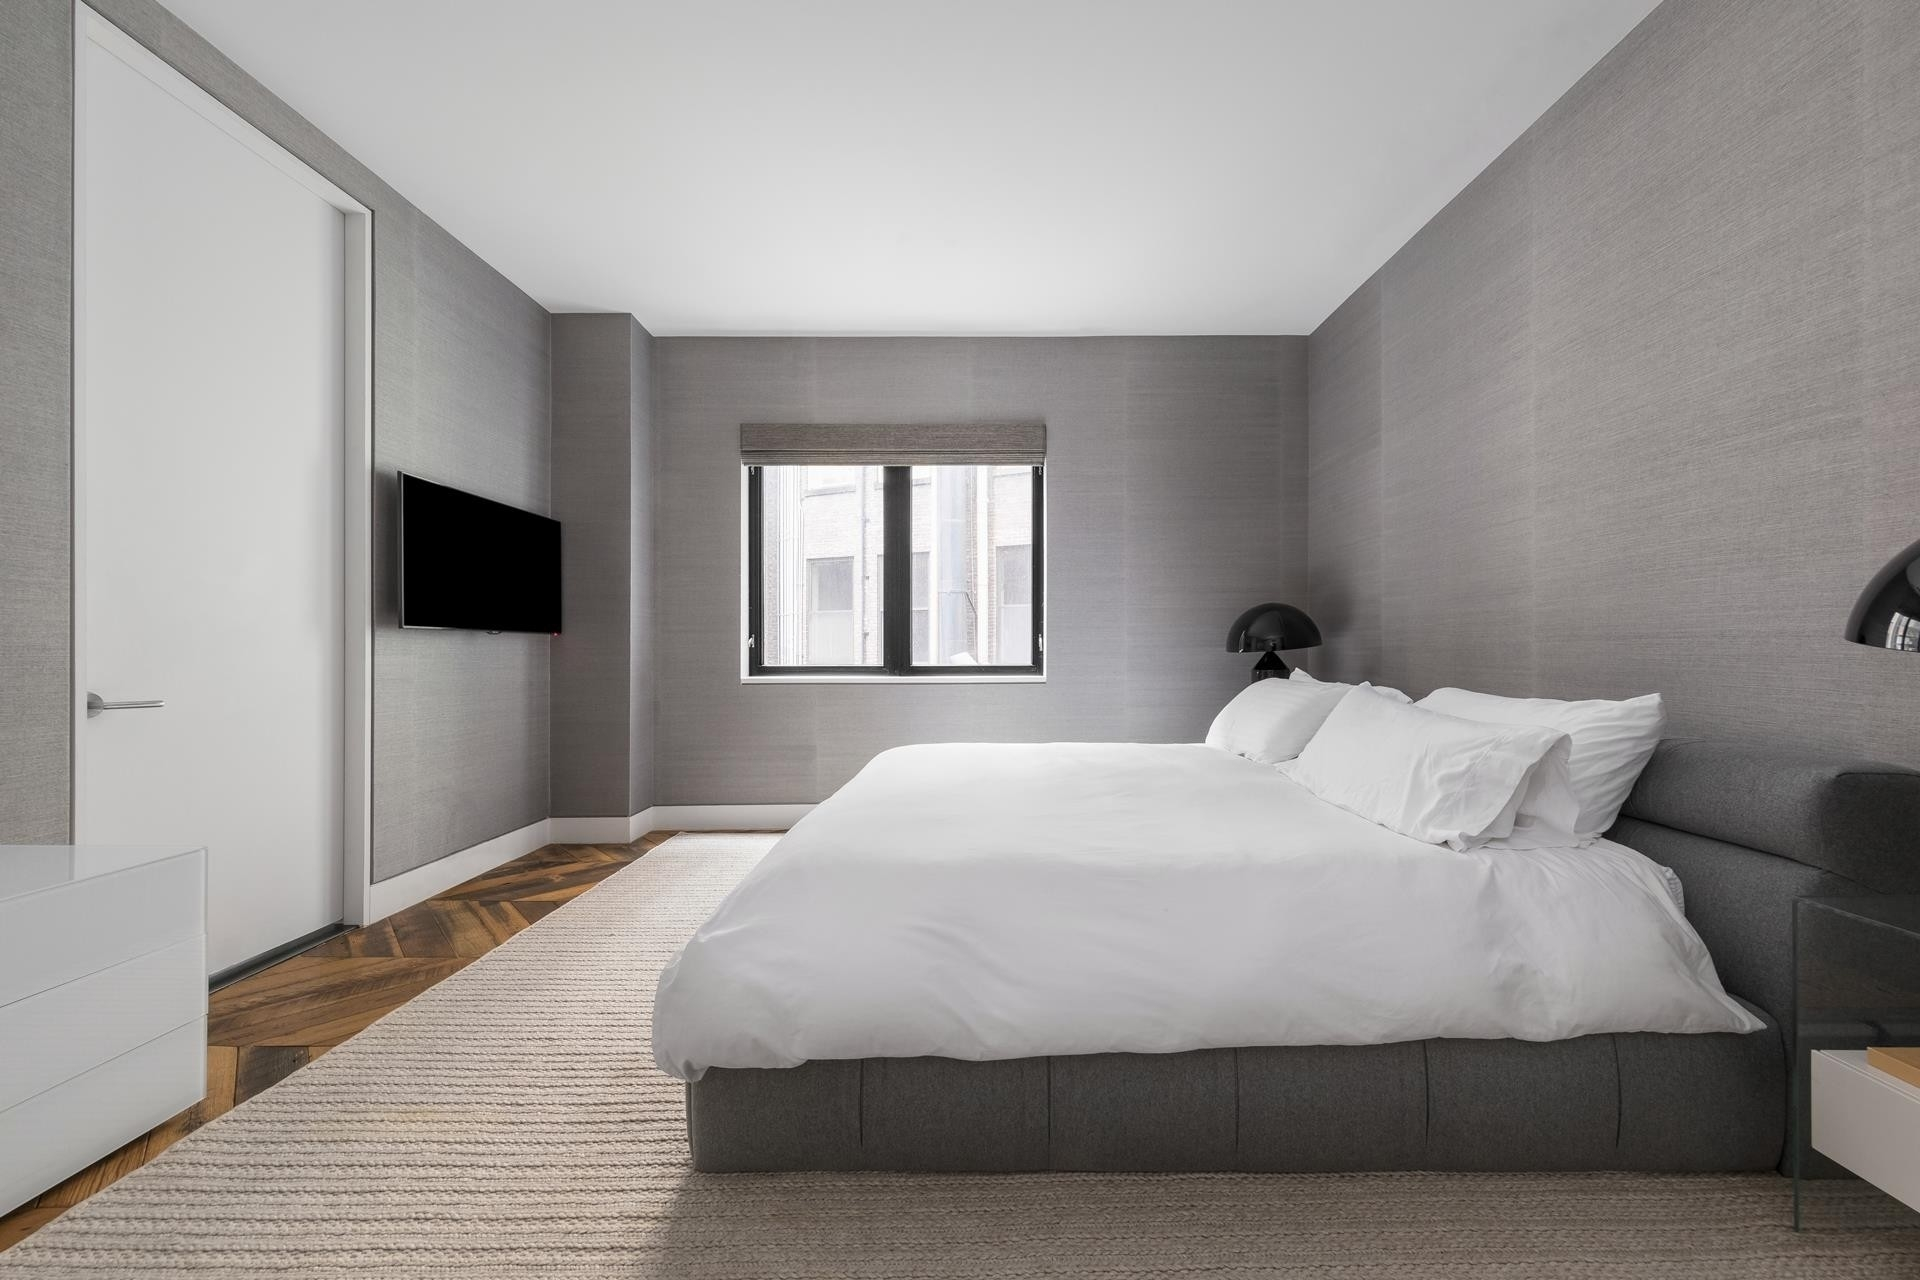 8. Condominiums for Sale at 1 North Moore St, TOWNHOUSE TriBeCa, New York, NY 10013